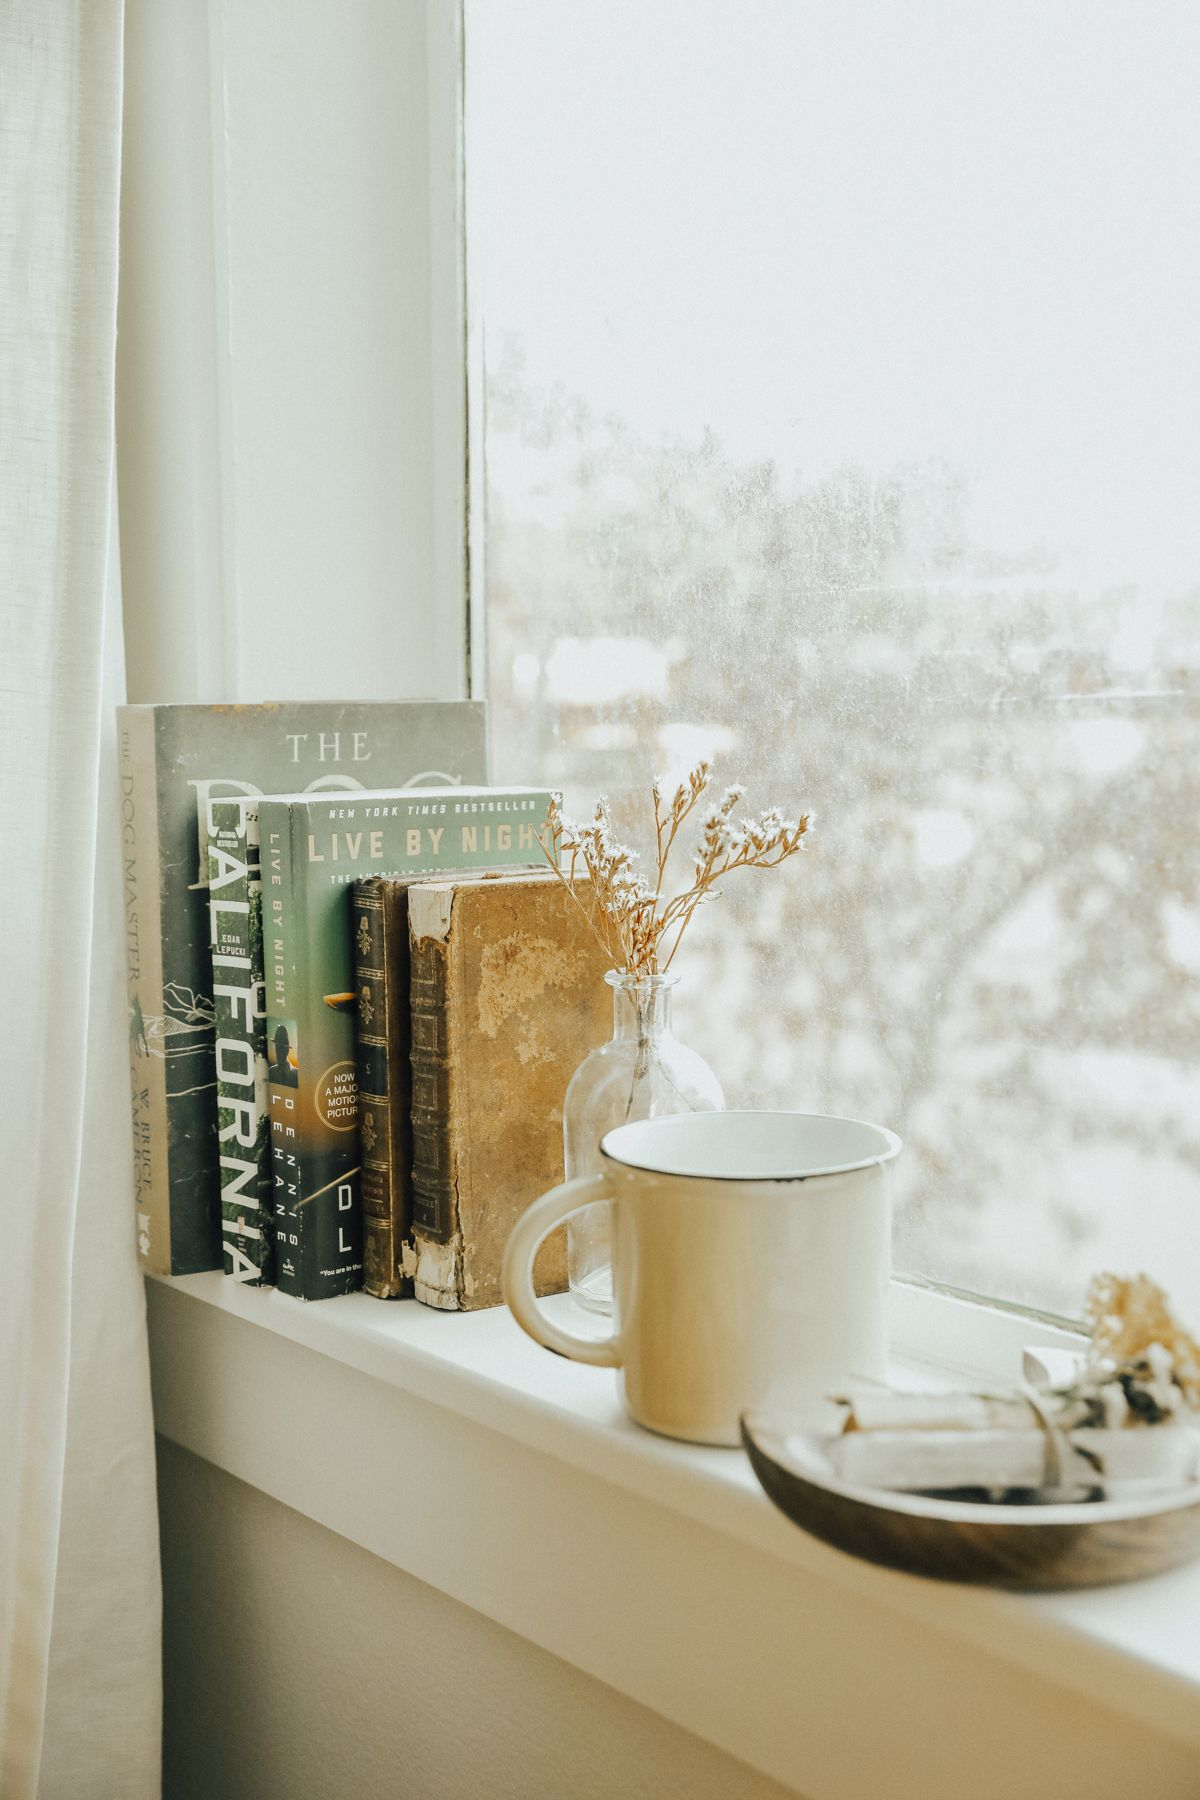 8 Items For the Home to Make Your Nest Cozy This Winter